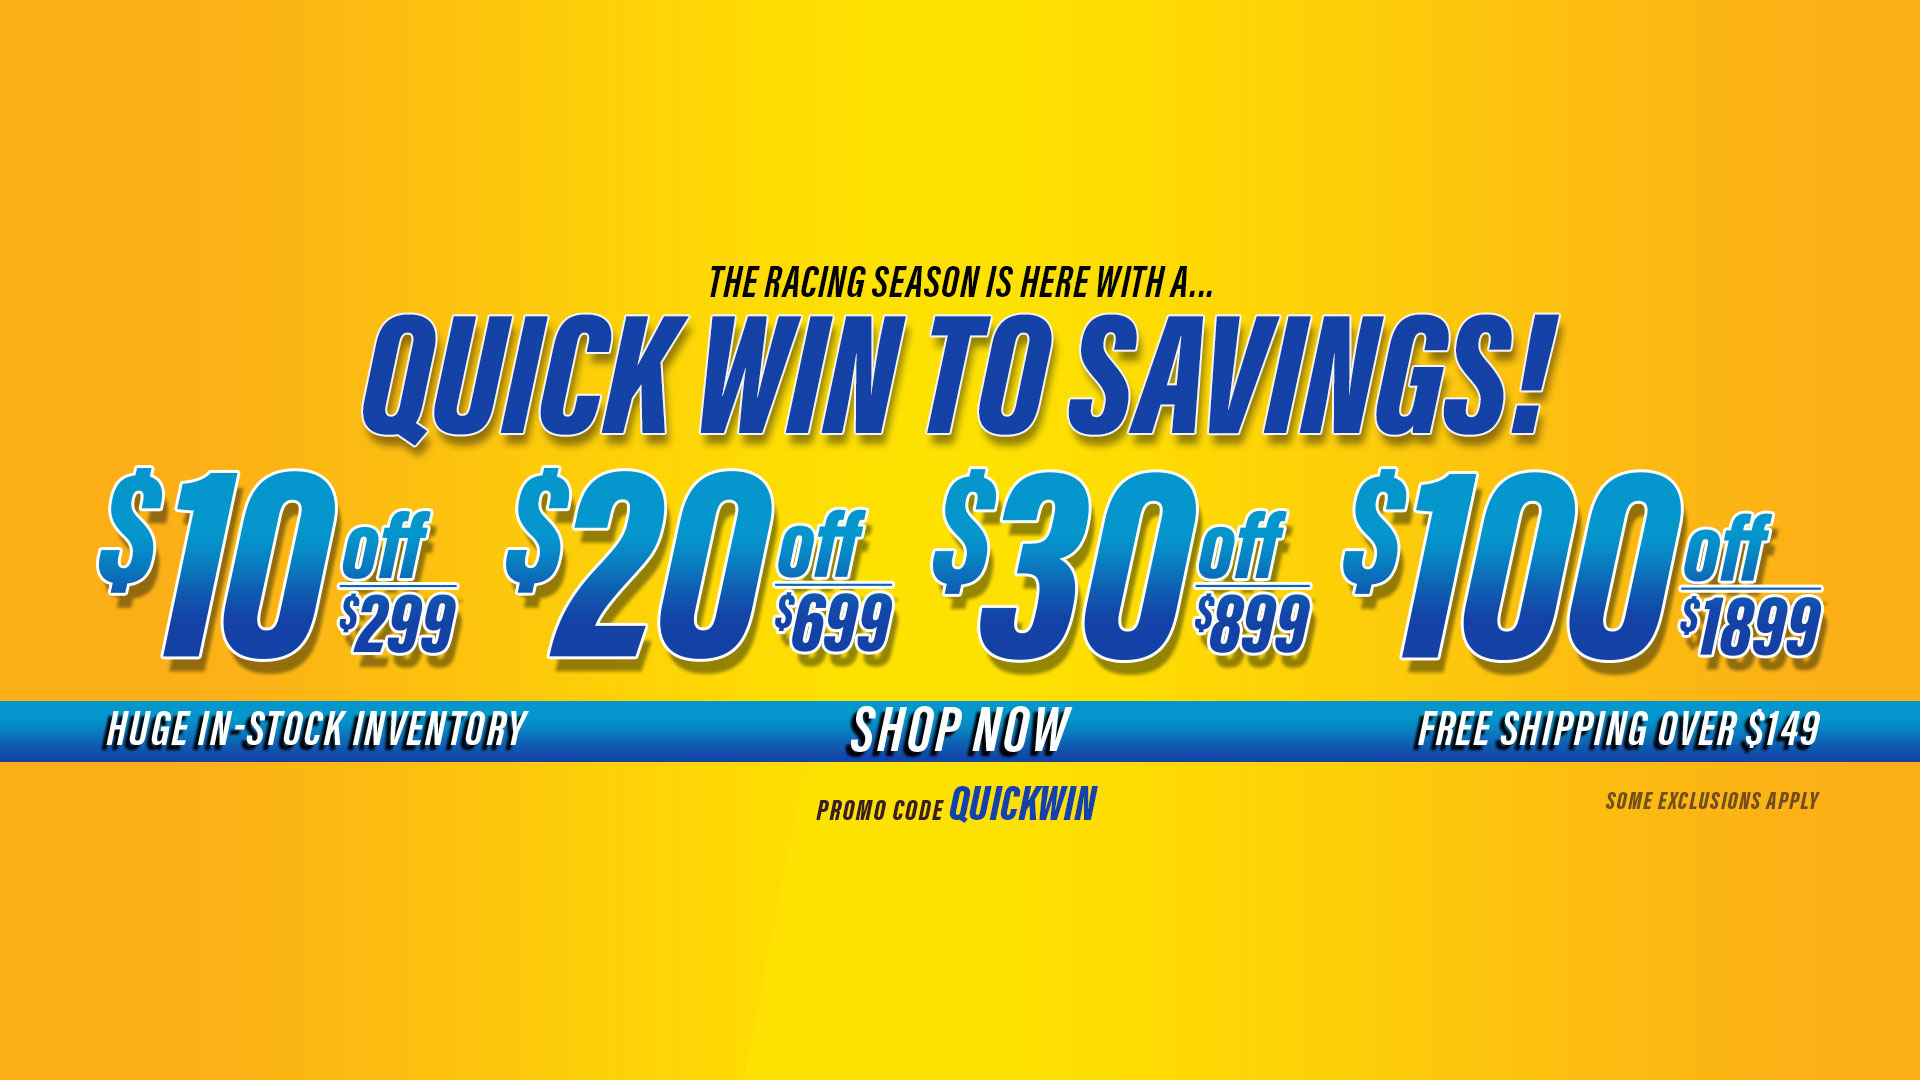 Save $10 Off $299, $20 Off $699, $30 Off $899, $100 Off $1,899 Orders - Promo Code: QUICKWIN